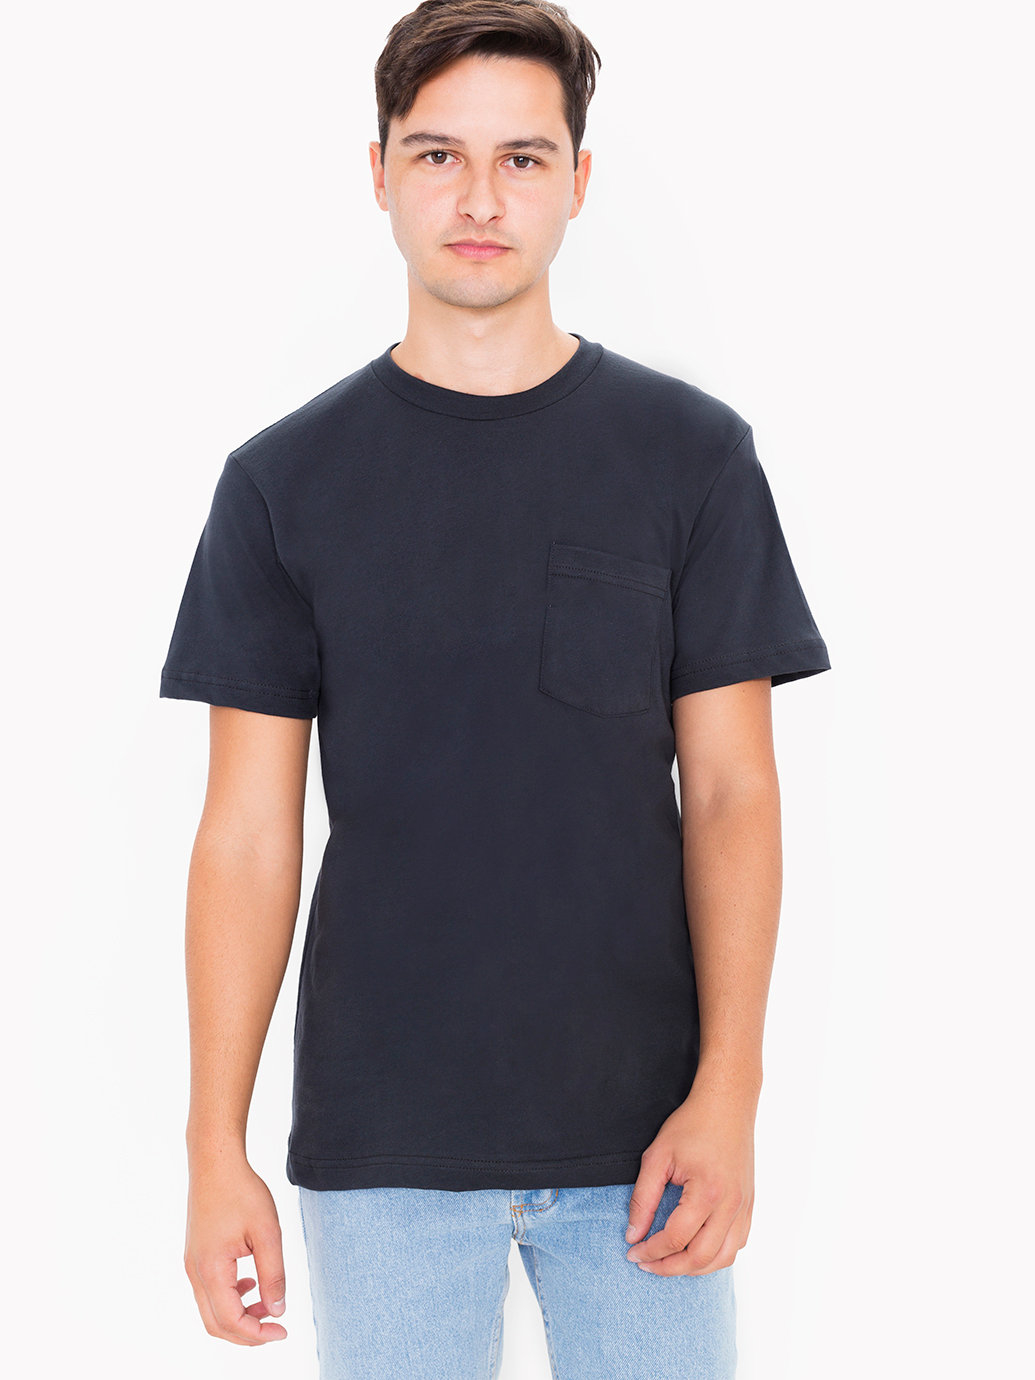 American Apparel Fine Jersey Crewneck Pocket T Shirt In